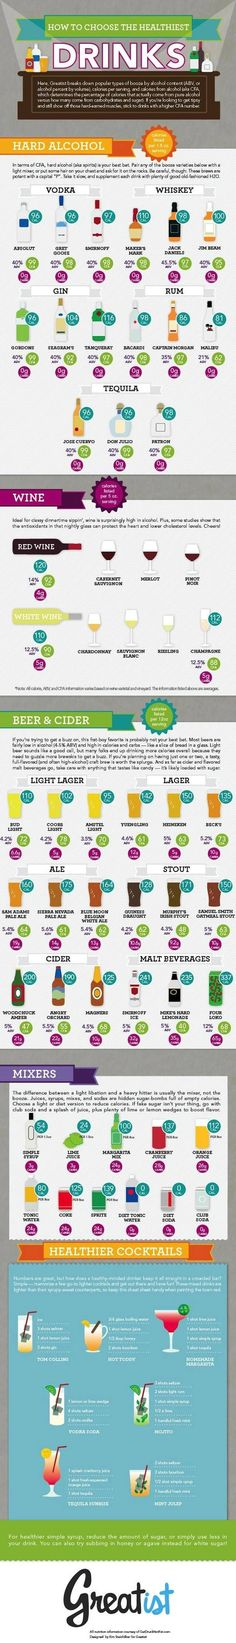 carb chart for alcoholic drinks, amount of carbs in alcohol. Who knew liquor had 0? My new diet lol